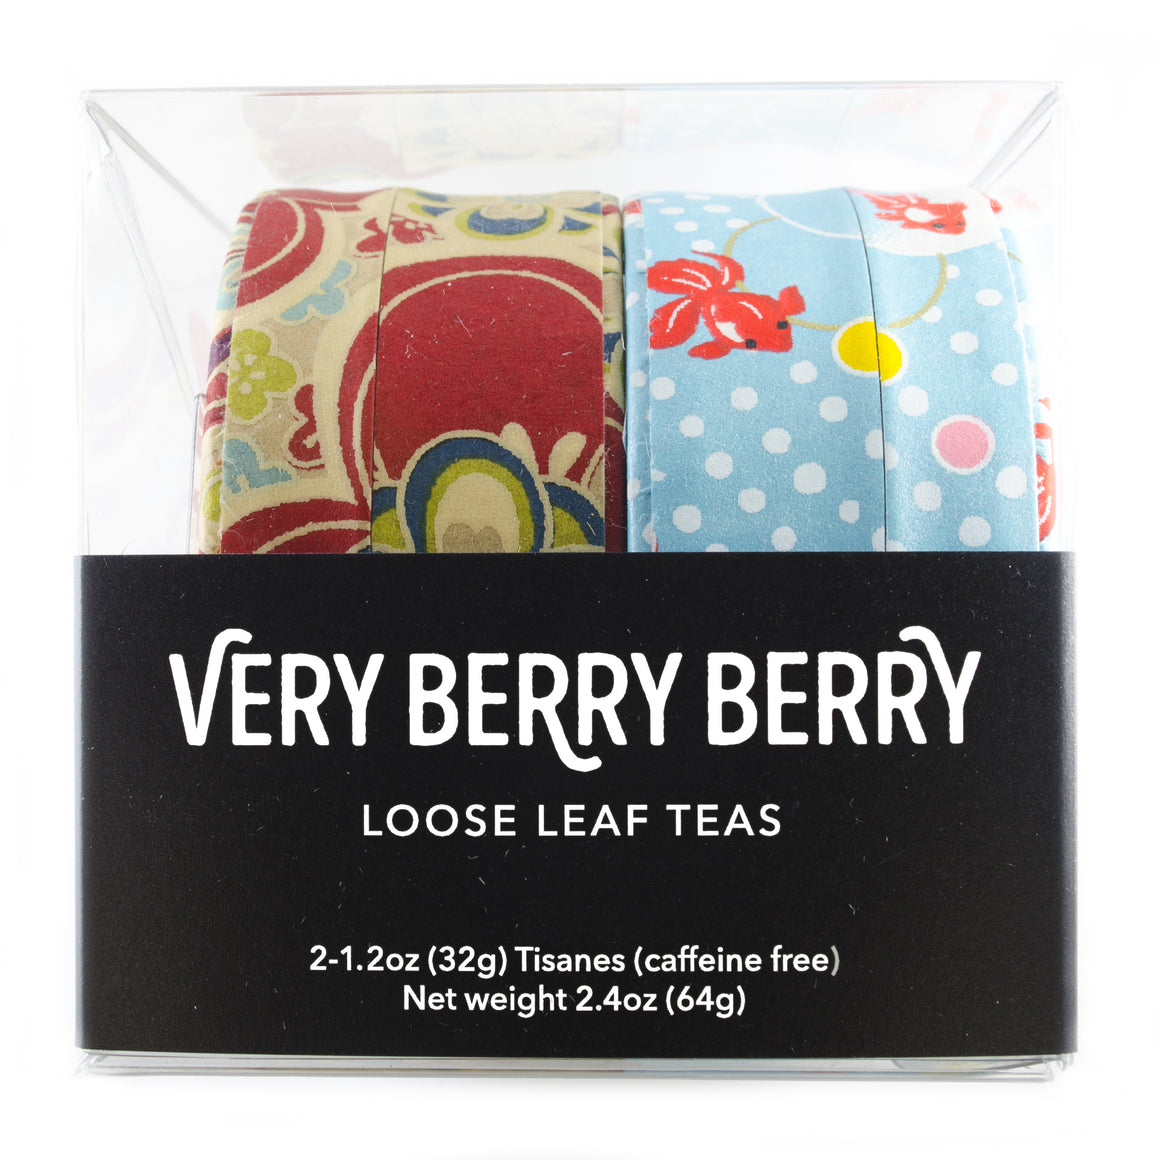 Very Berry Berry - Todd & Holland Tea Merchants